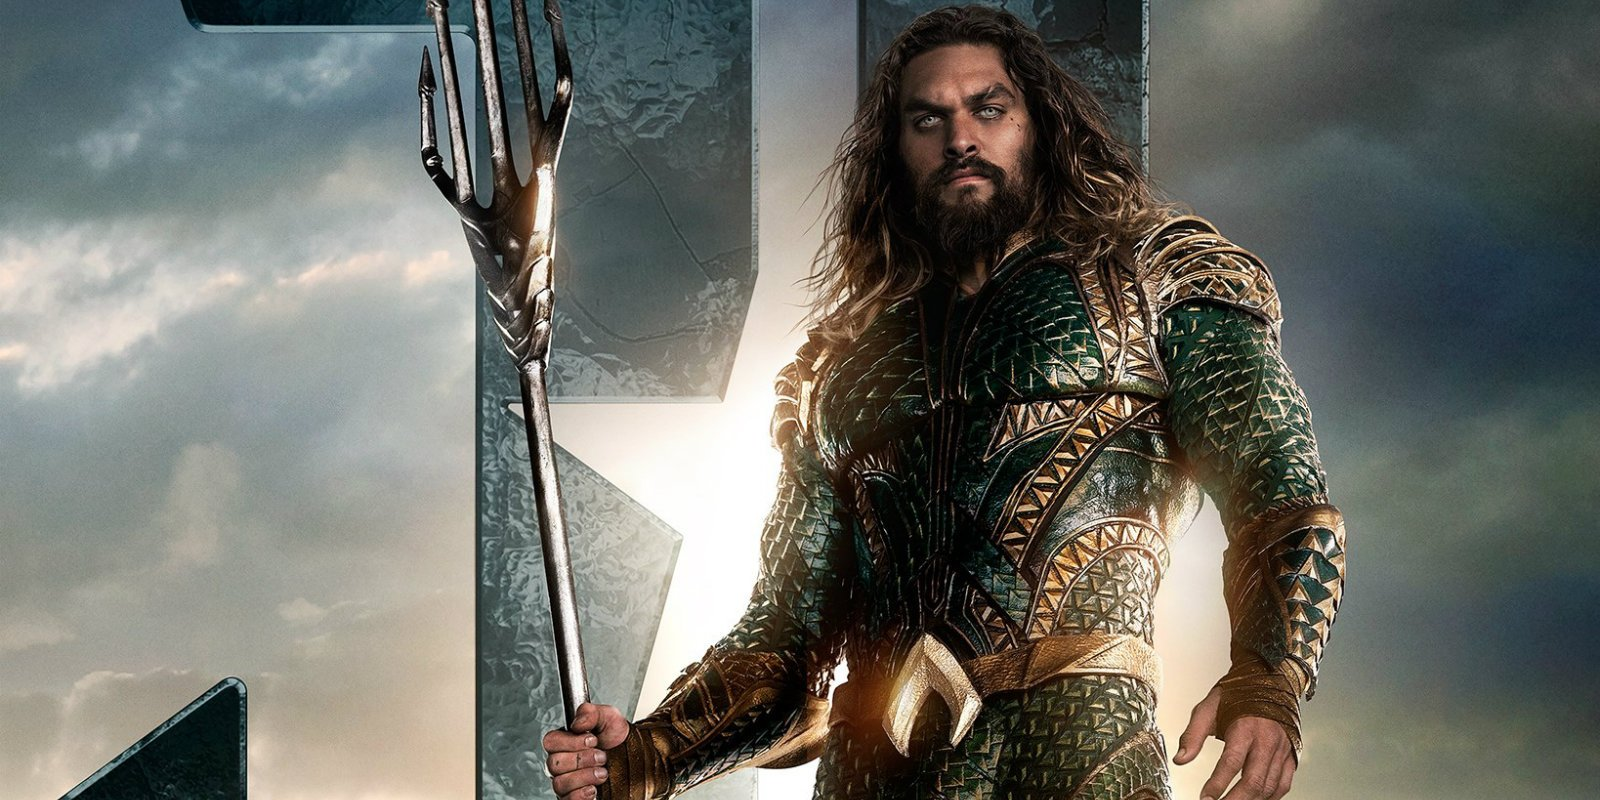 RUMOR: WB May Bring Aquaman Trailer To Comic-Con, And Here's What It'll Show